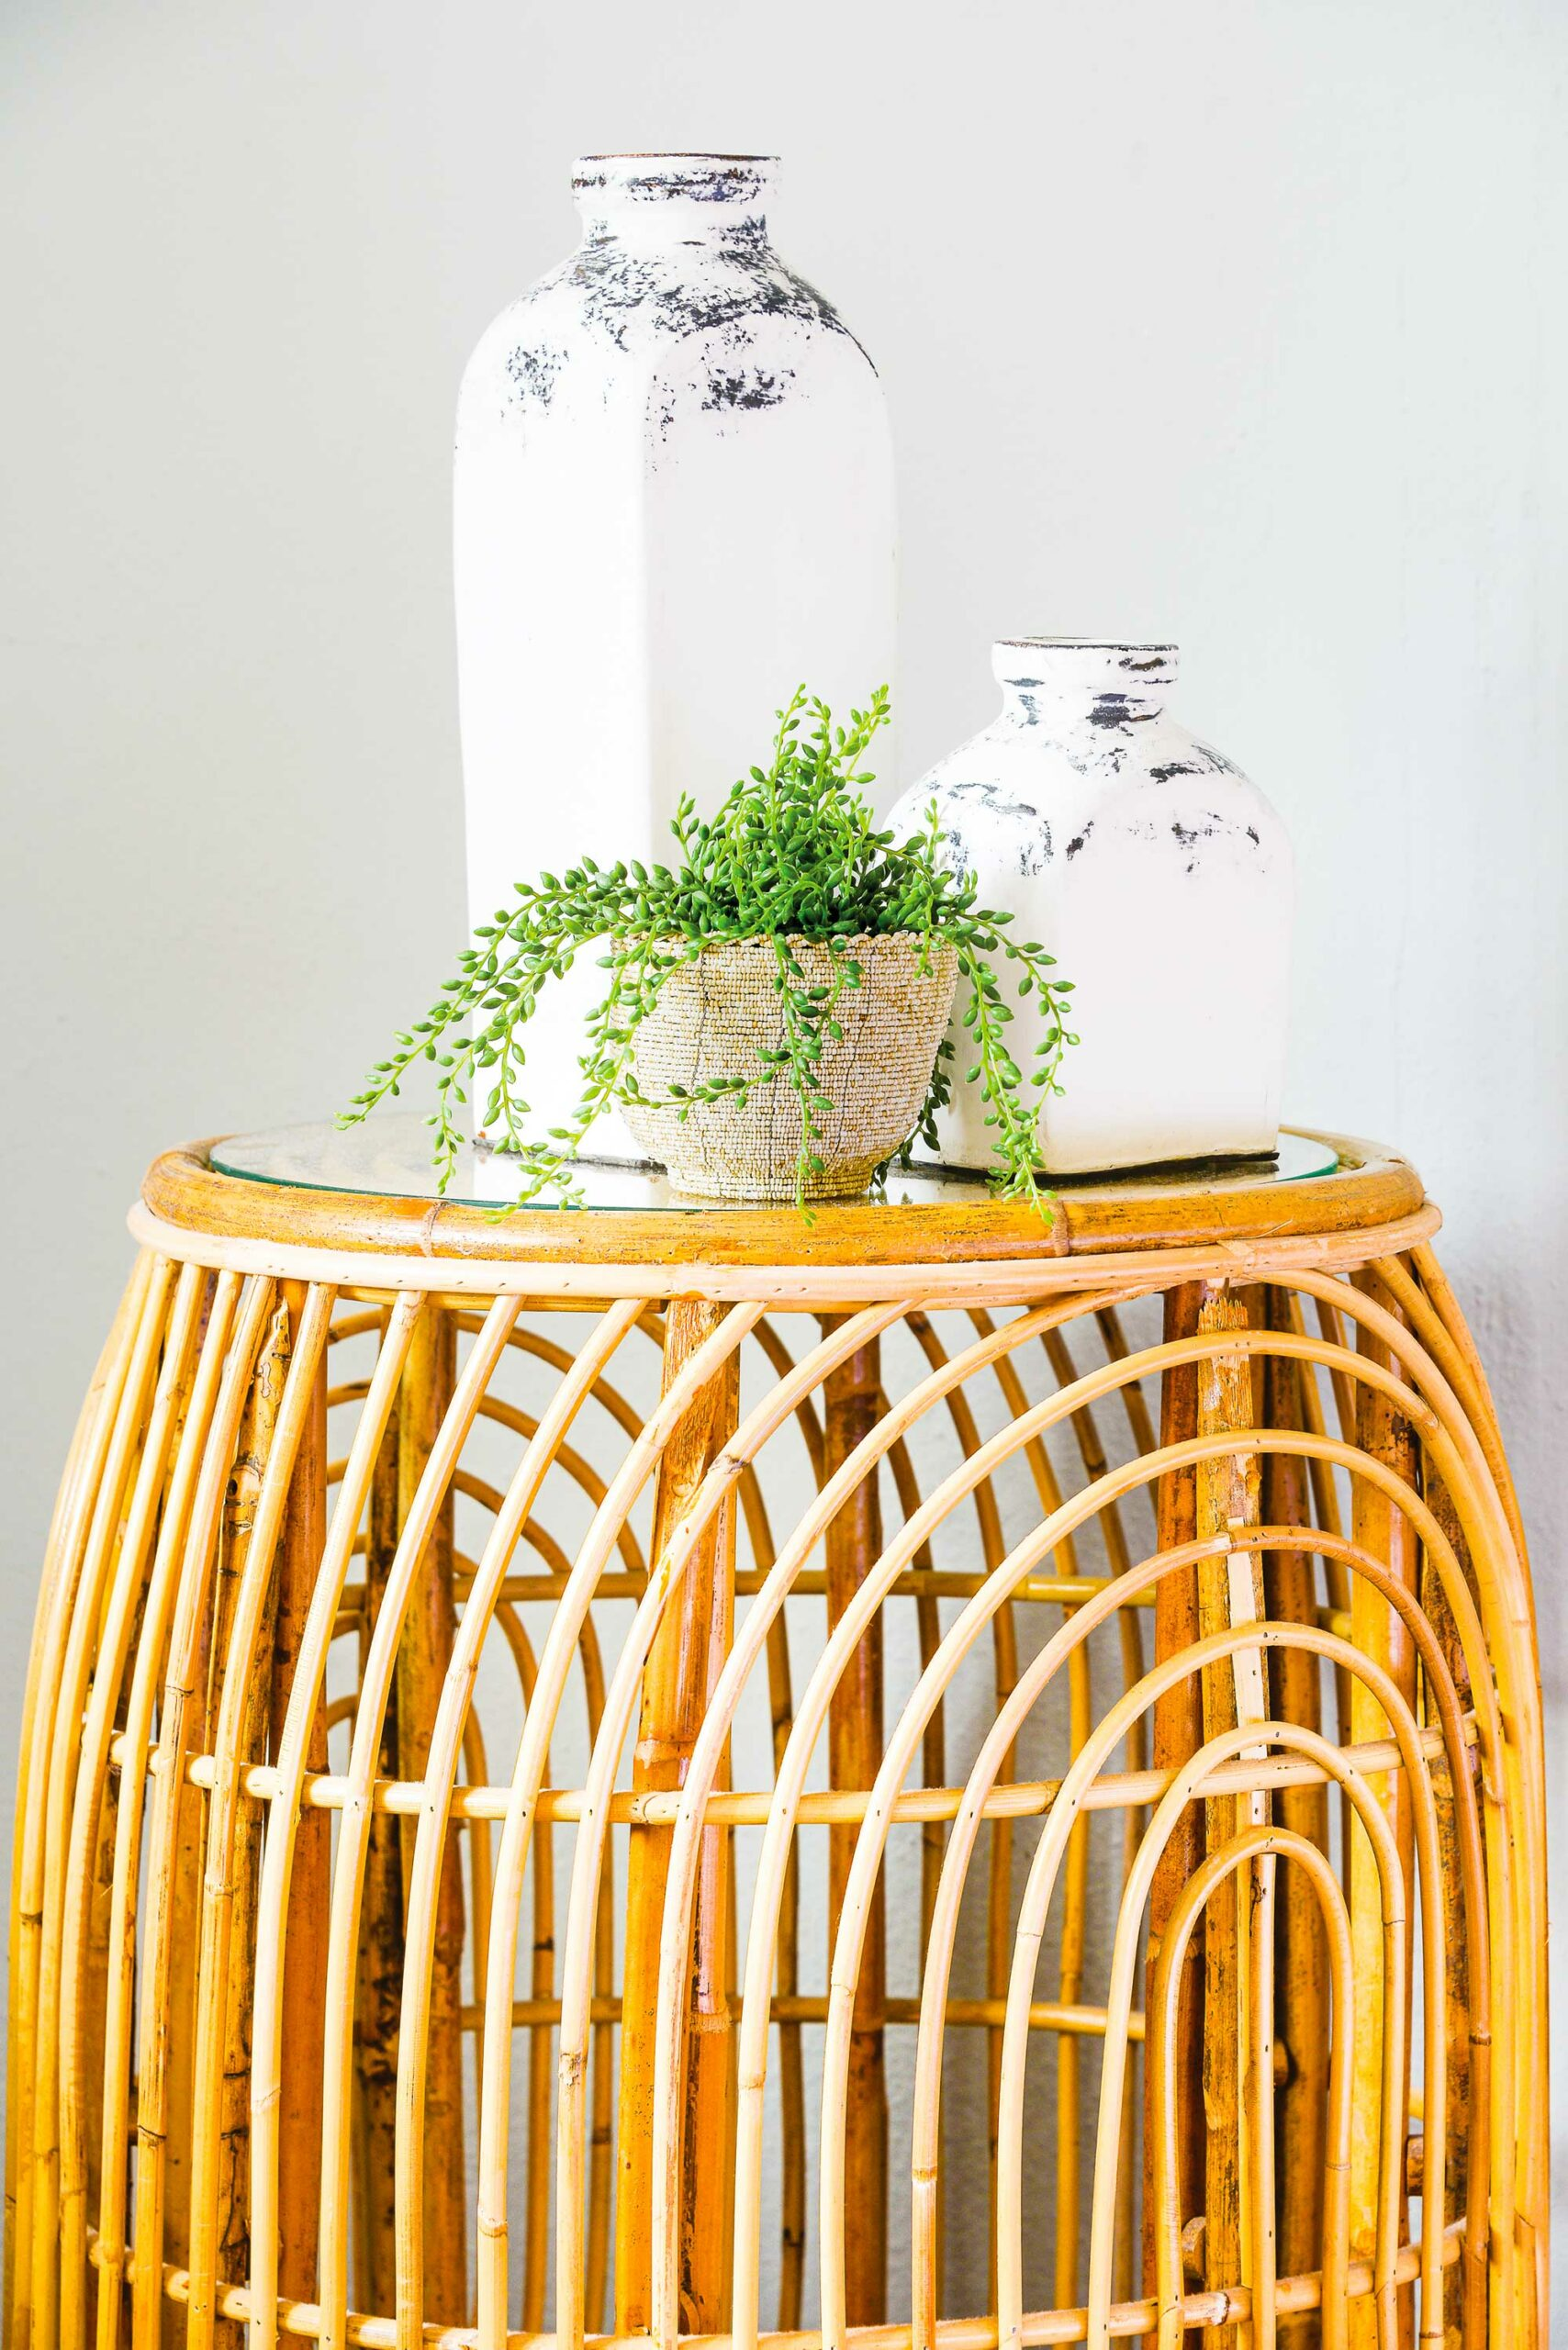 cane furniture, green plant, white rustic vases